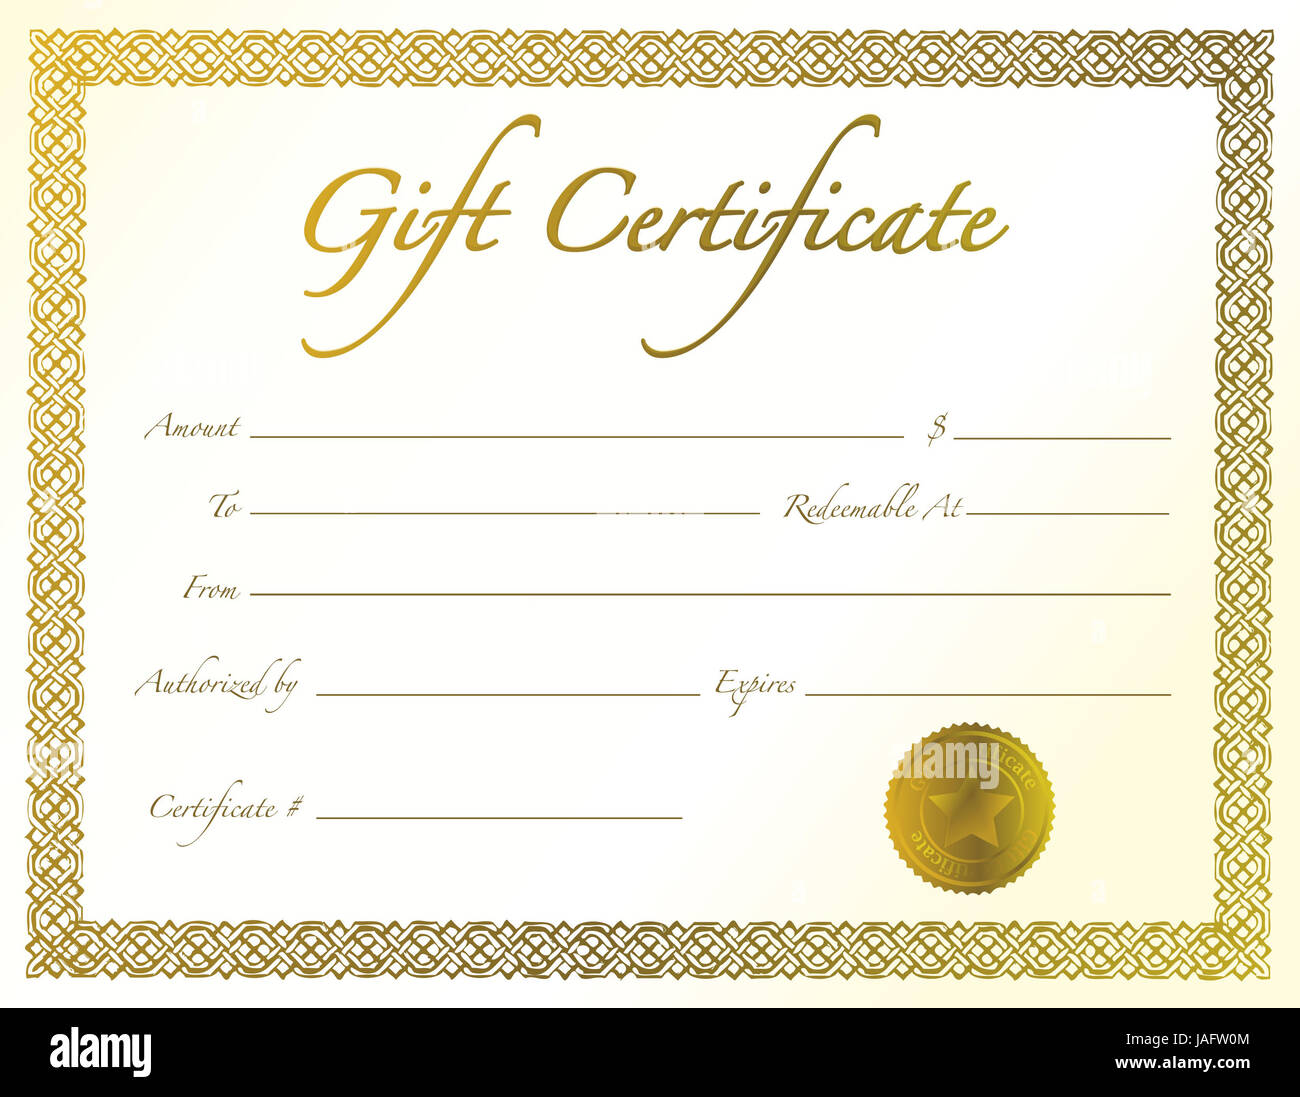 gold gift certificate with golden seal and design border stock photo